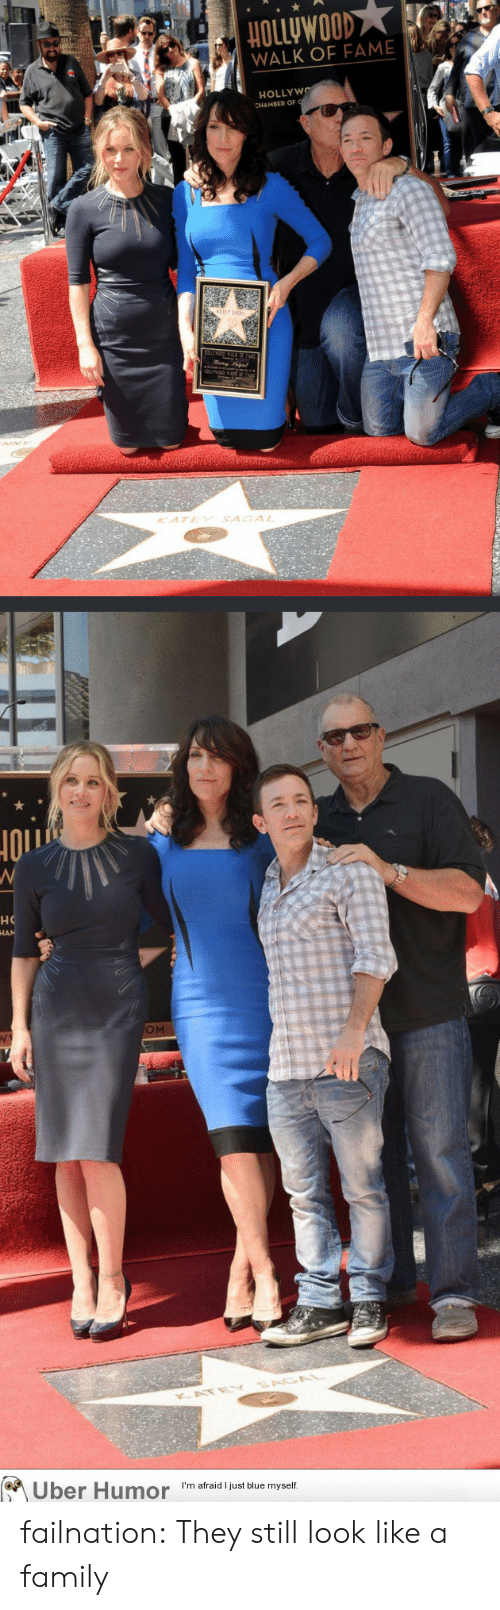 hollywood: HOLLyWOOD  WALK OF FAME  HOLLYWO  KATEY SAGAL  но  OM  KATE  Uber Humor  I'm afraid I just blue myself. failnation:  They still look like a family